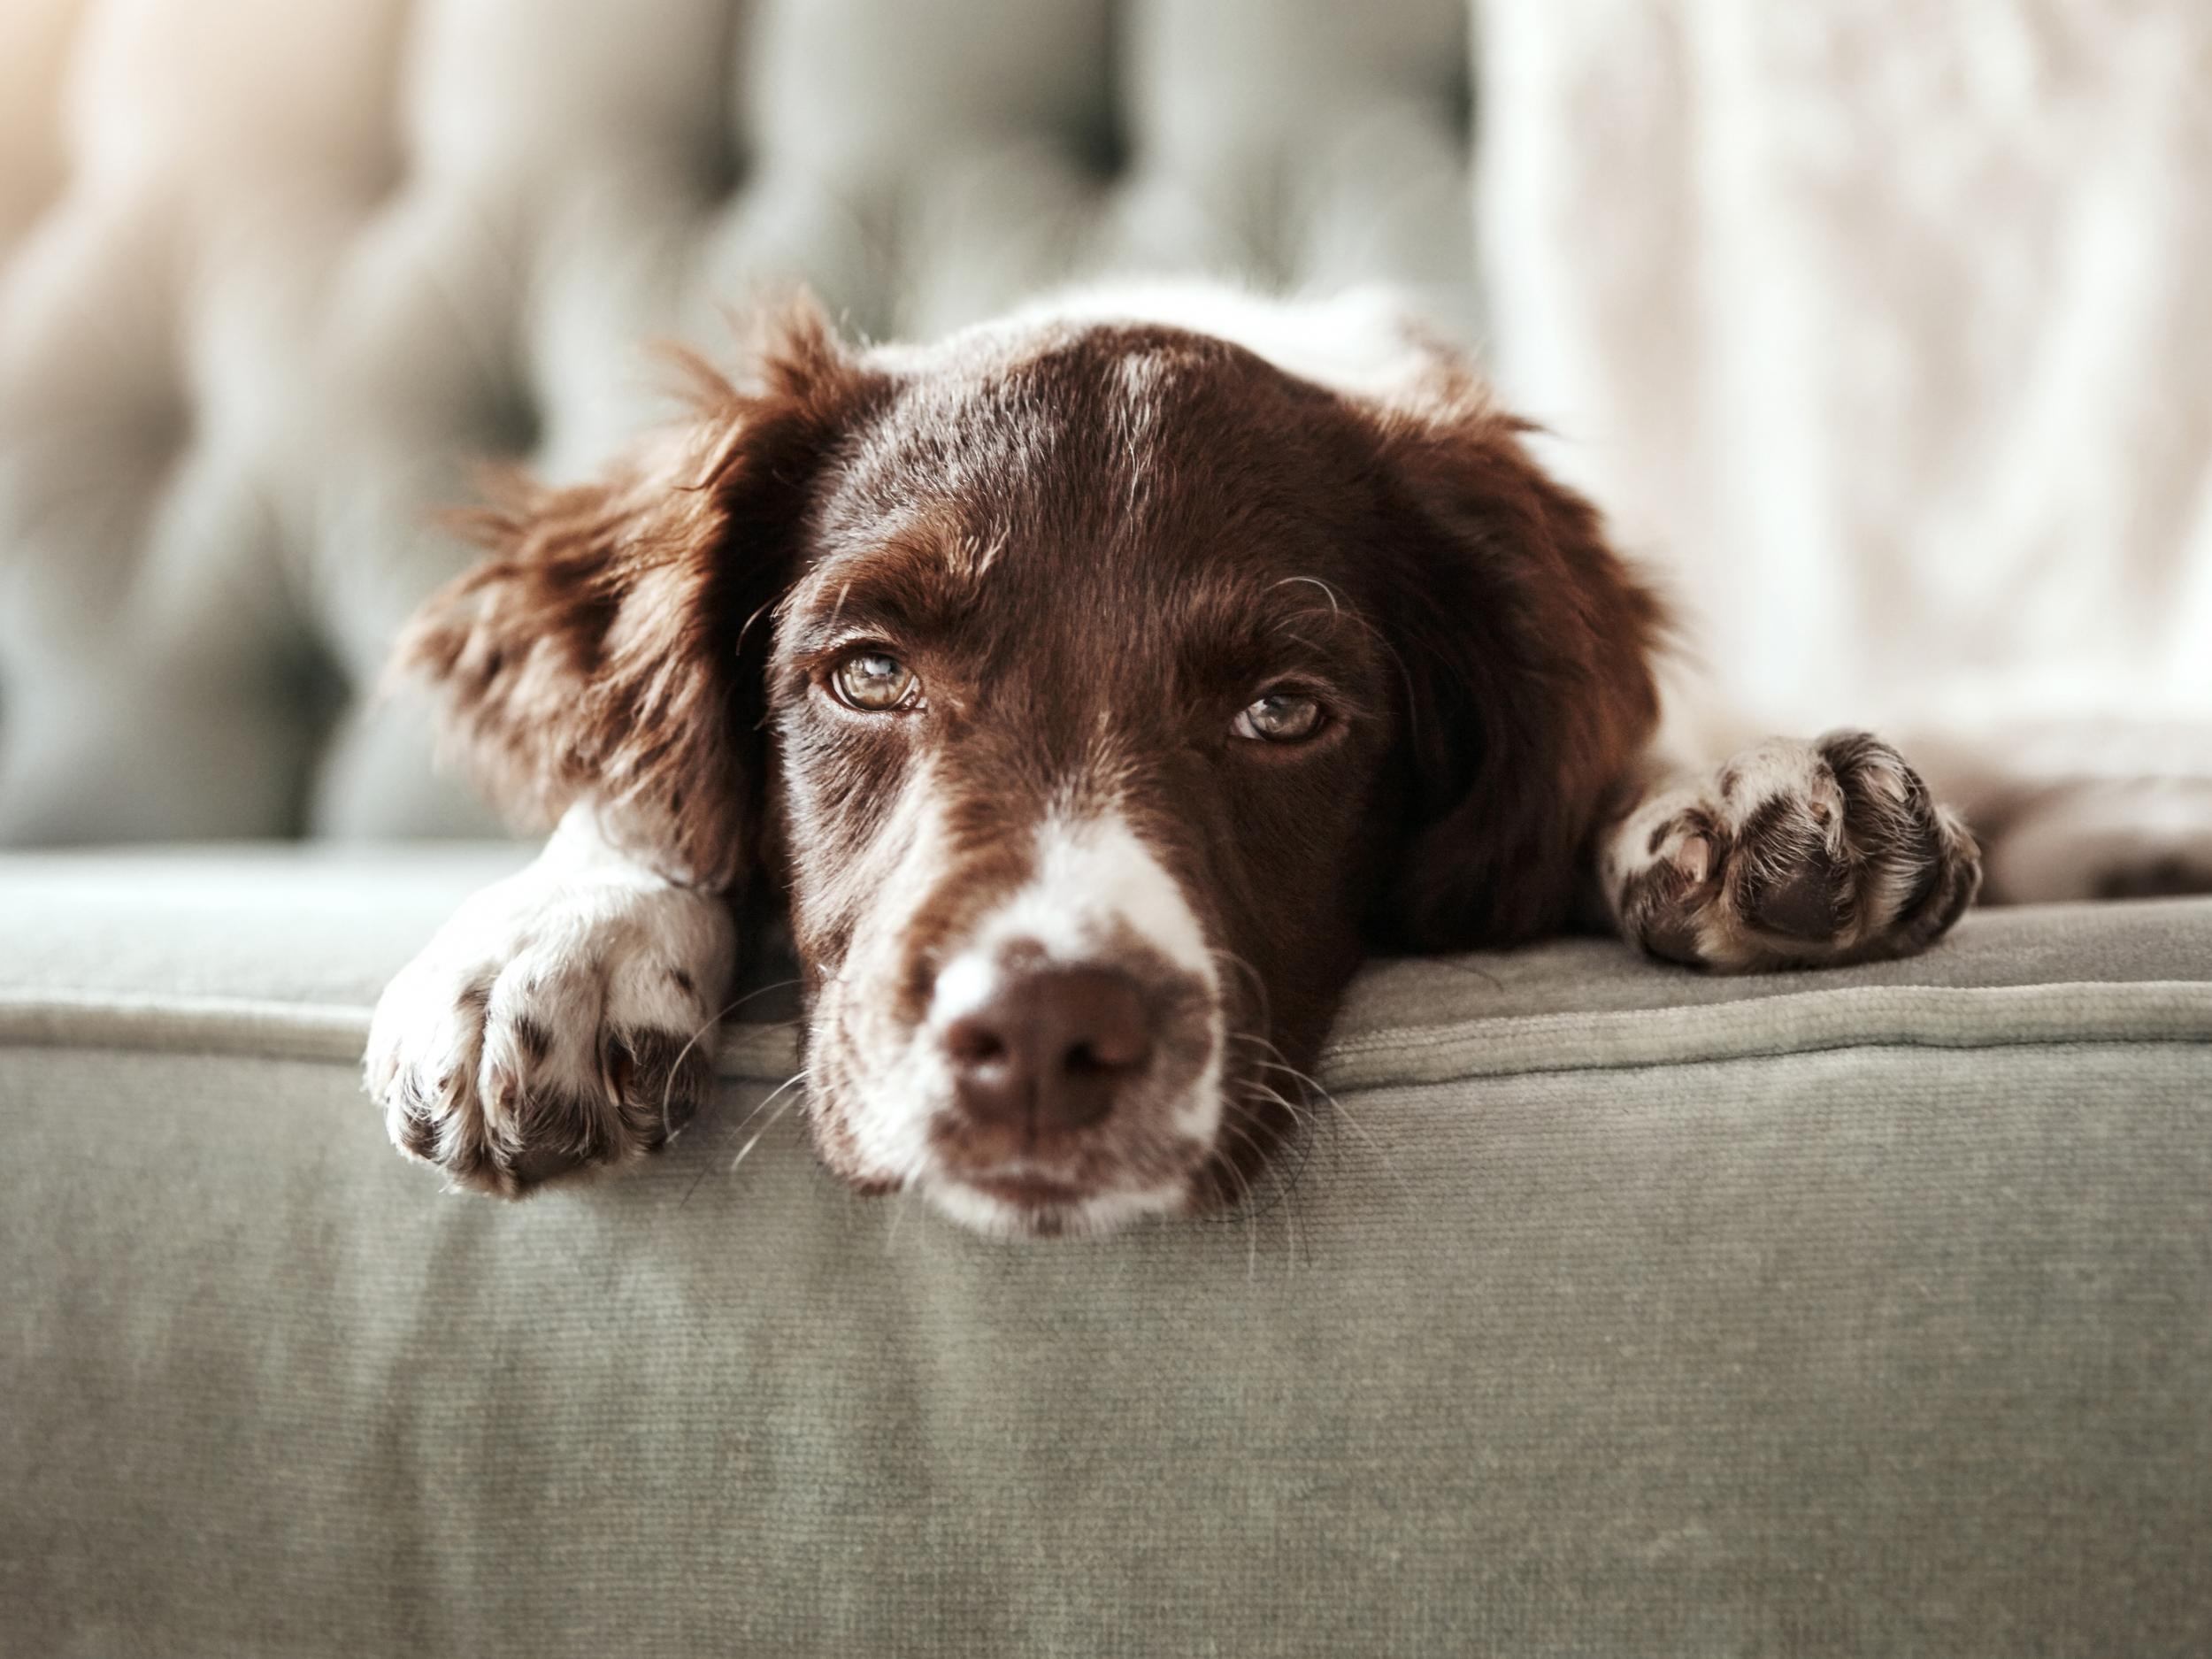 Pets across the UK are 'lonely, overweight and stressed', says new report